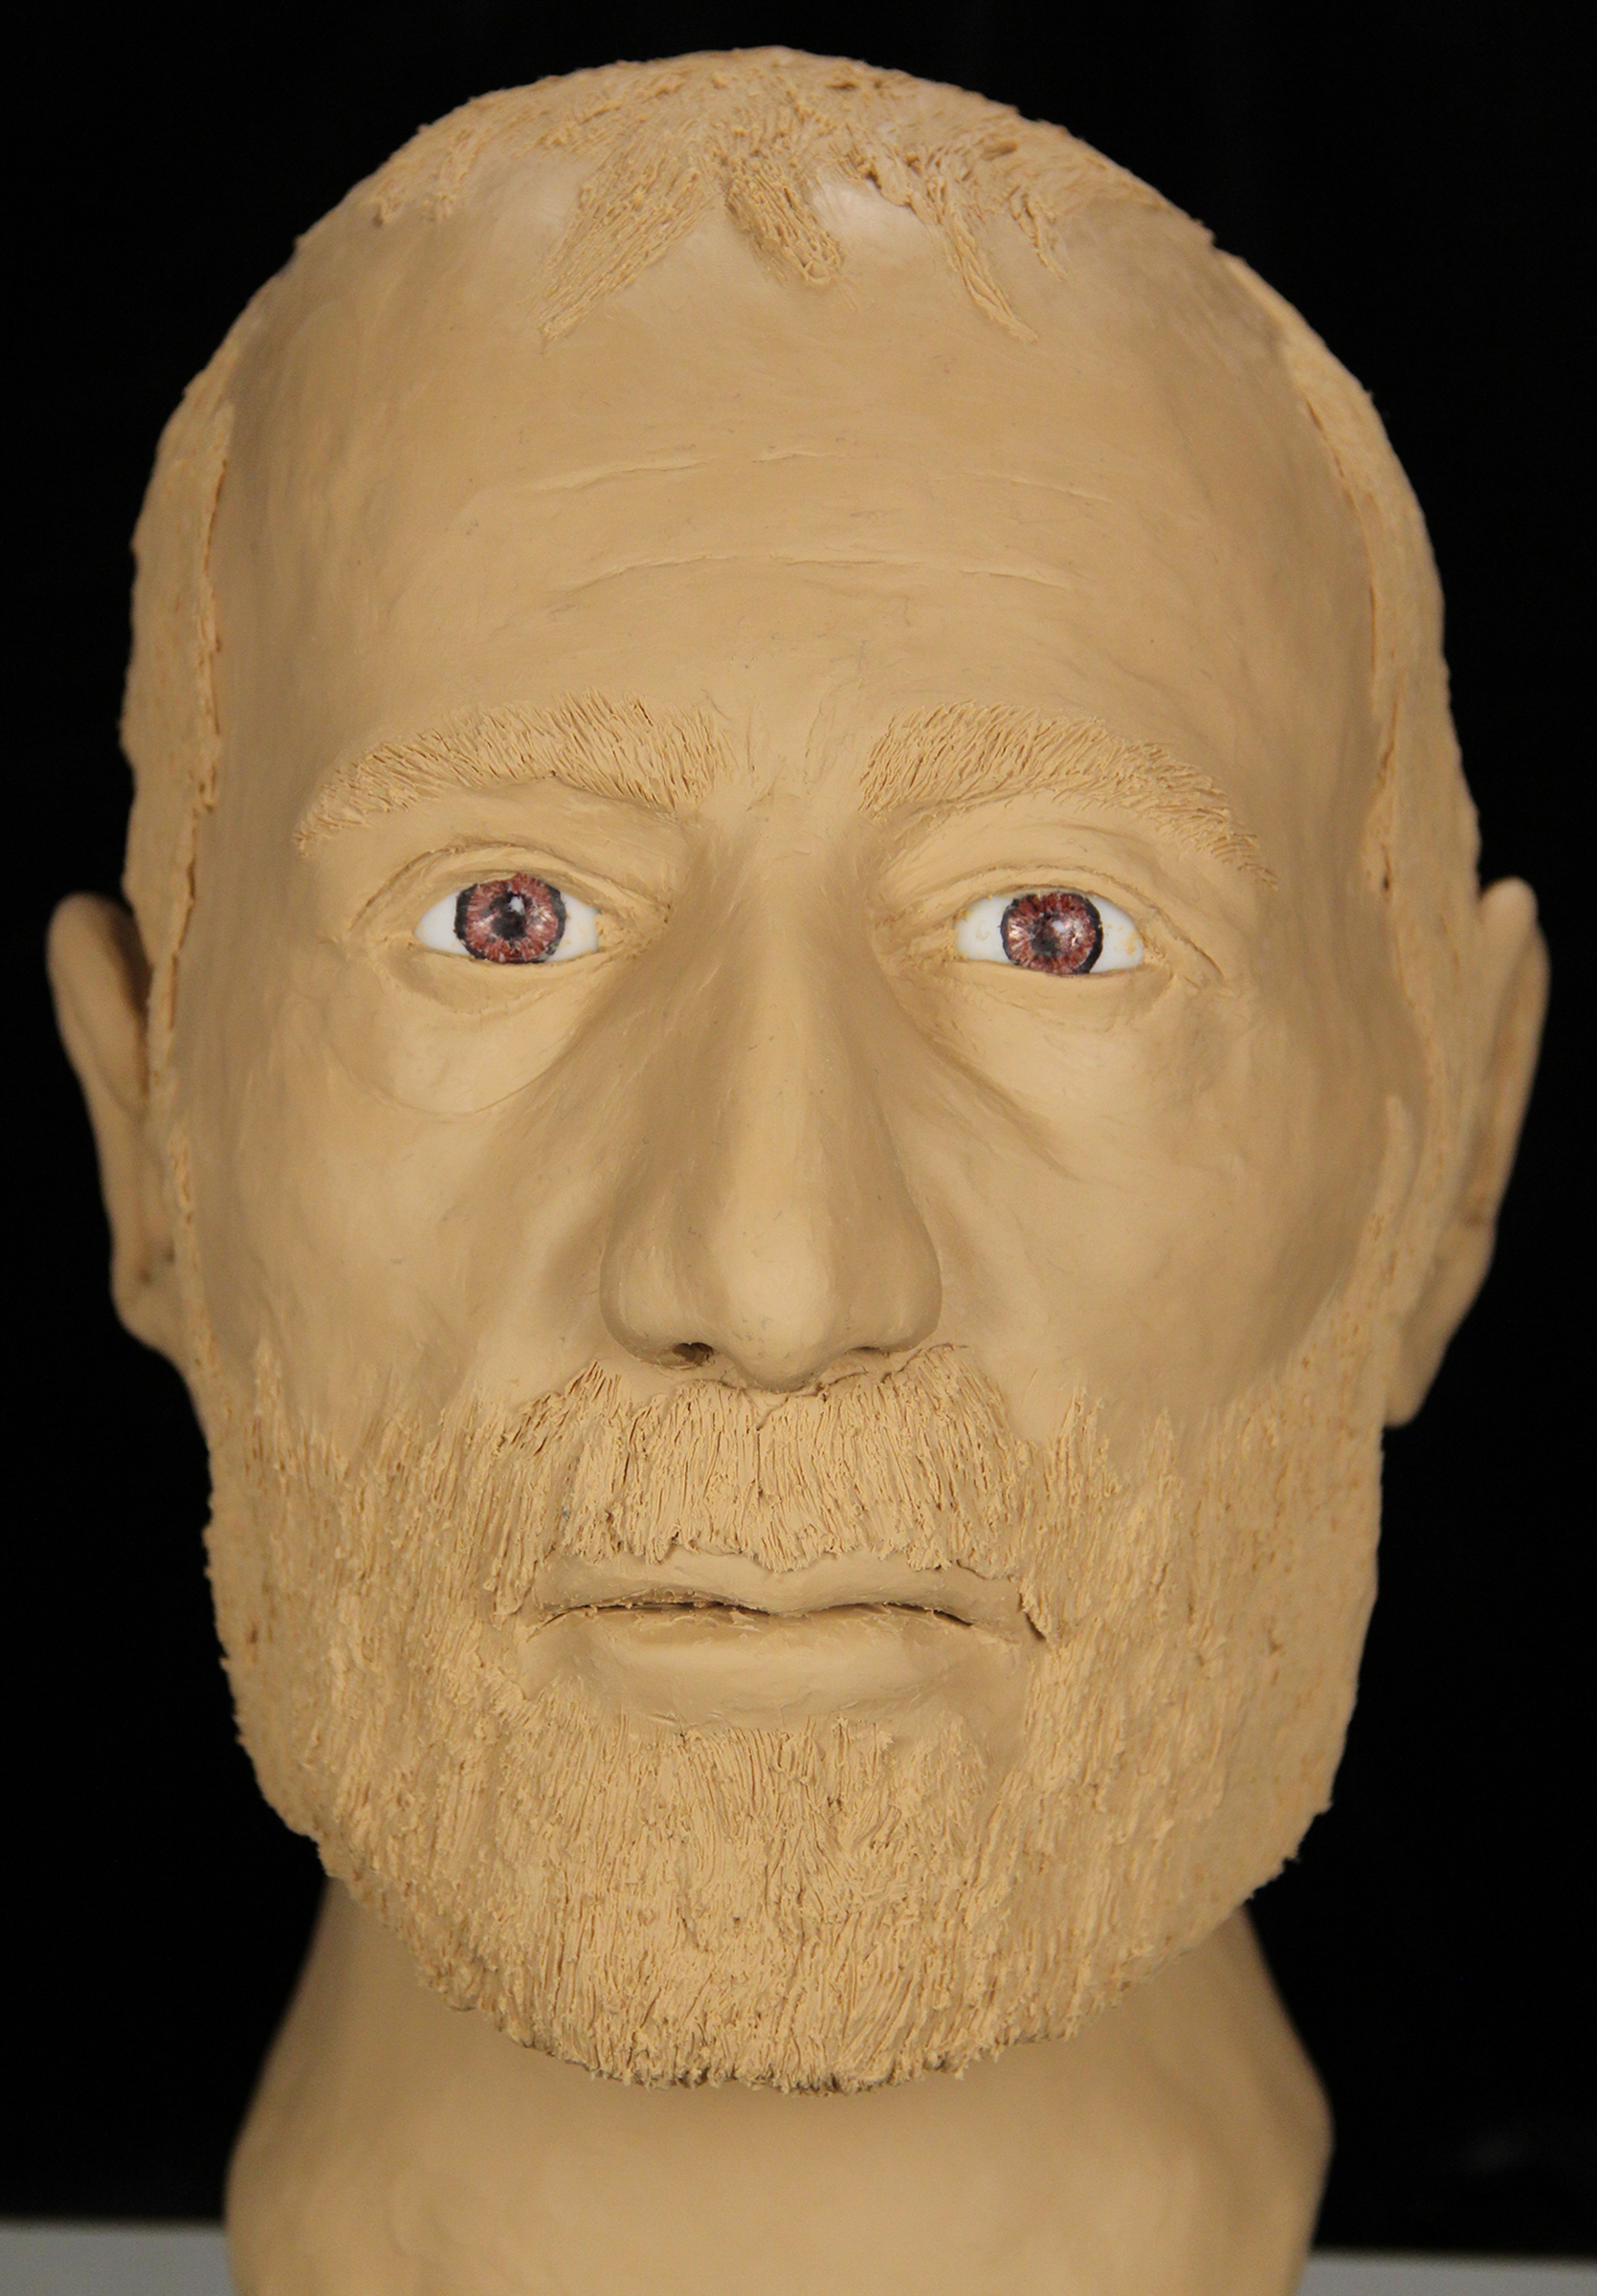 Hillsborough County John Doe (1985)